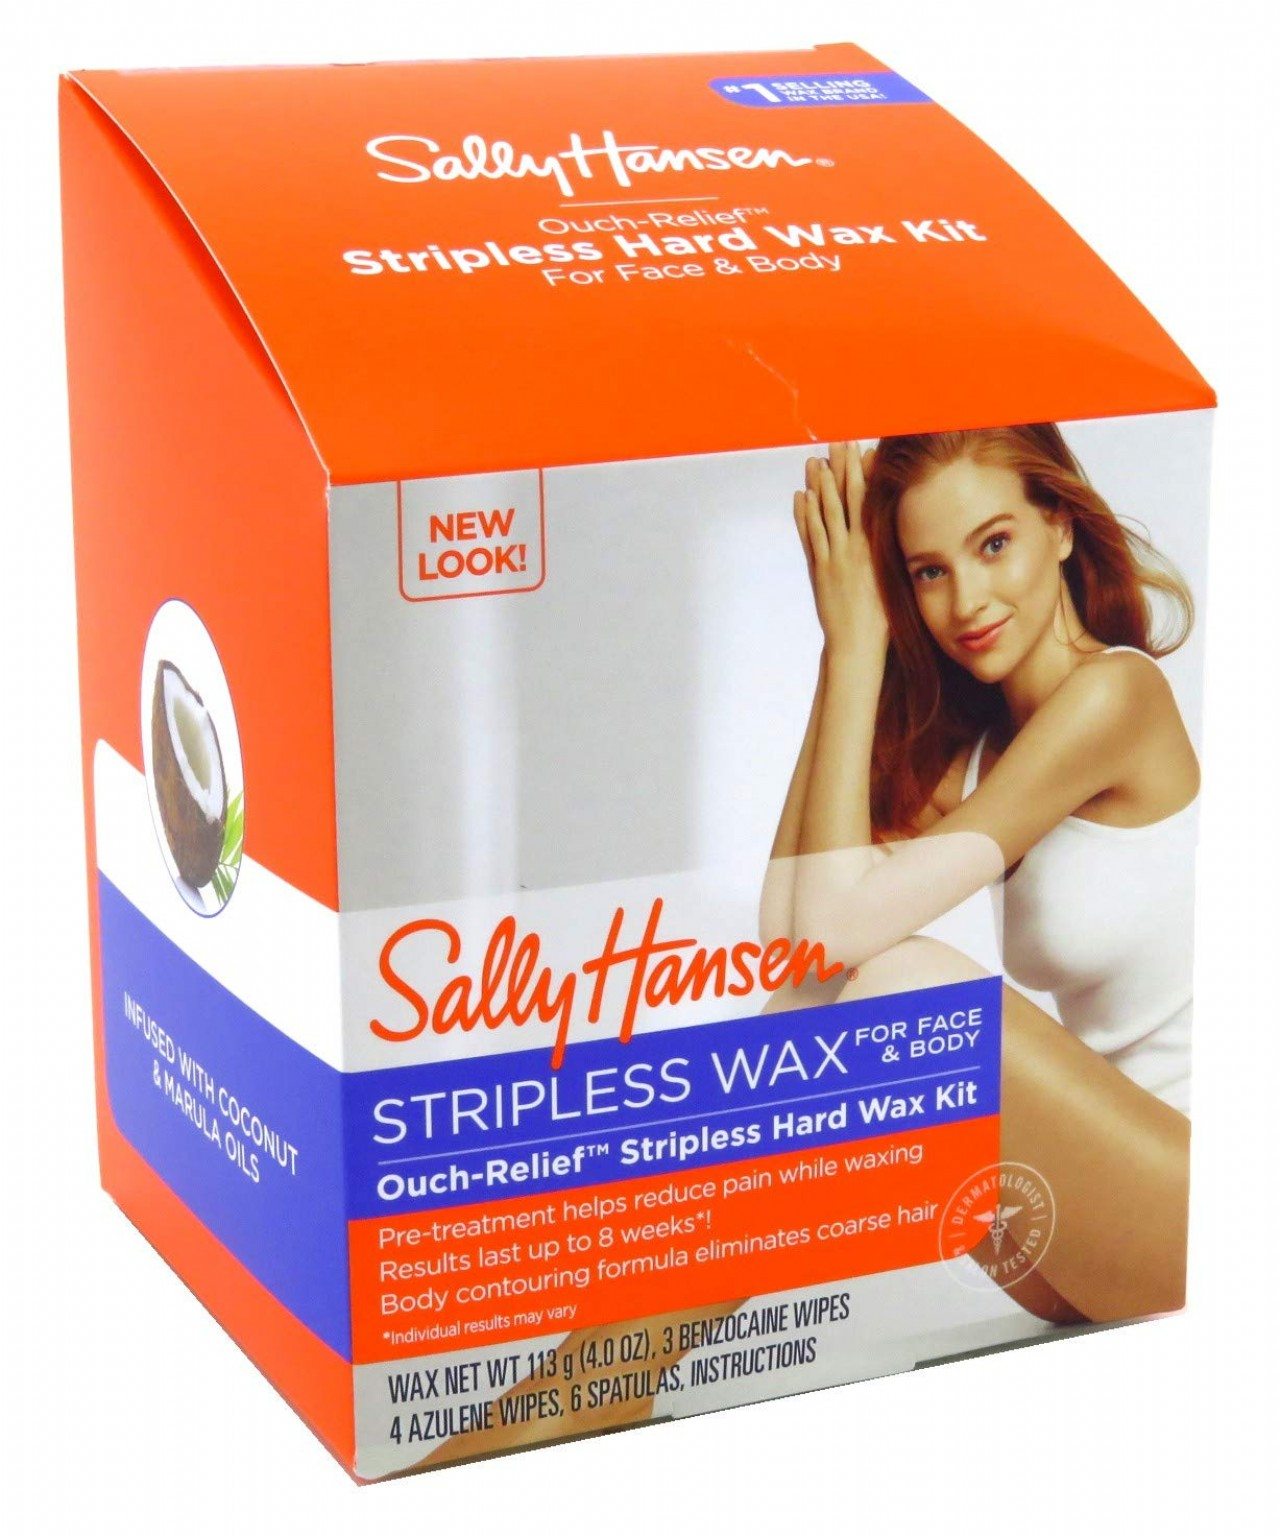 Sally Hansen Ouch-Relief Stripless Hard Wax Kit (2 Pack)